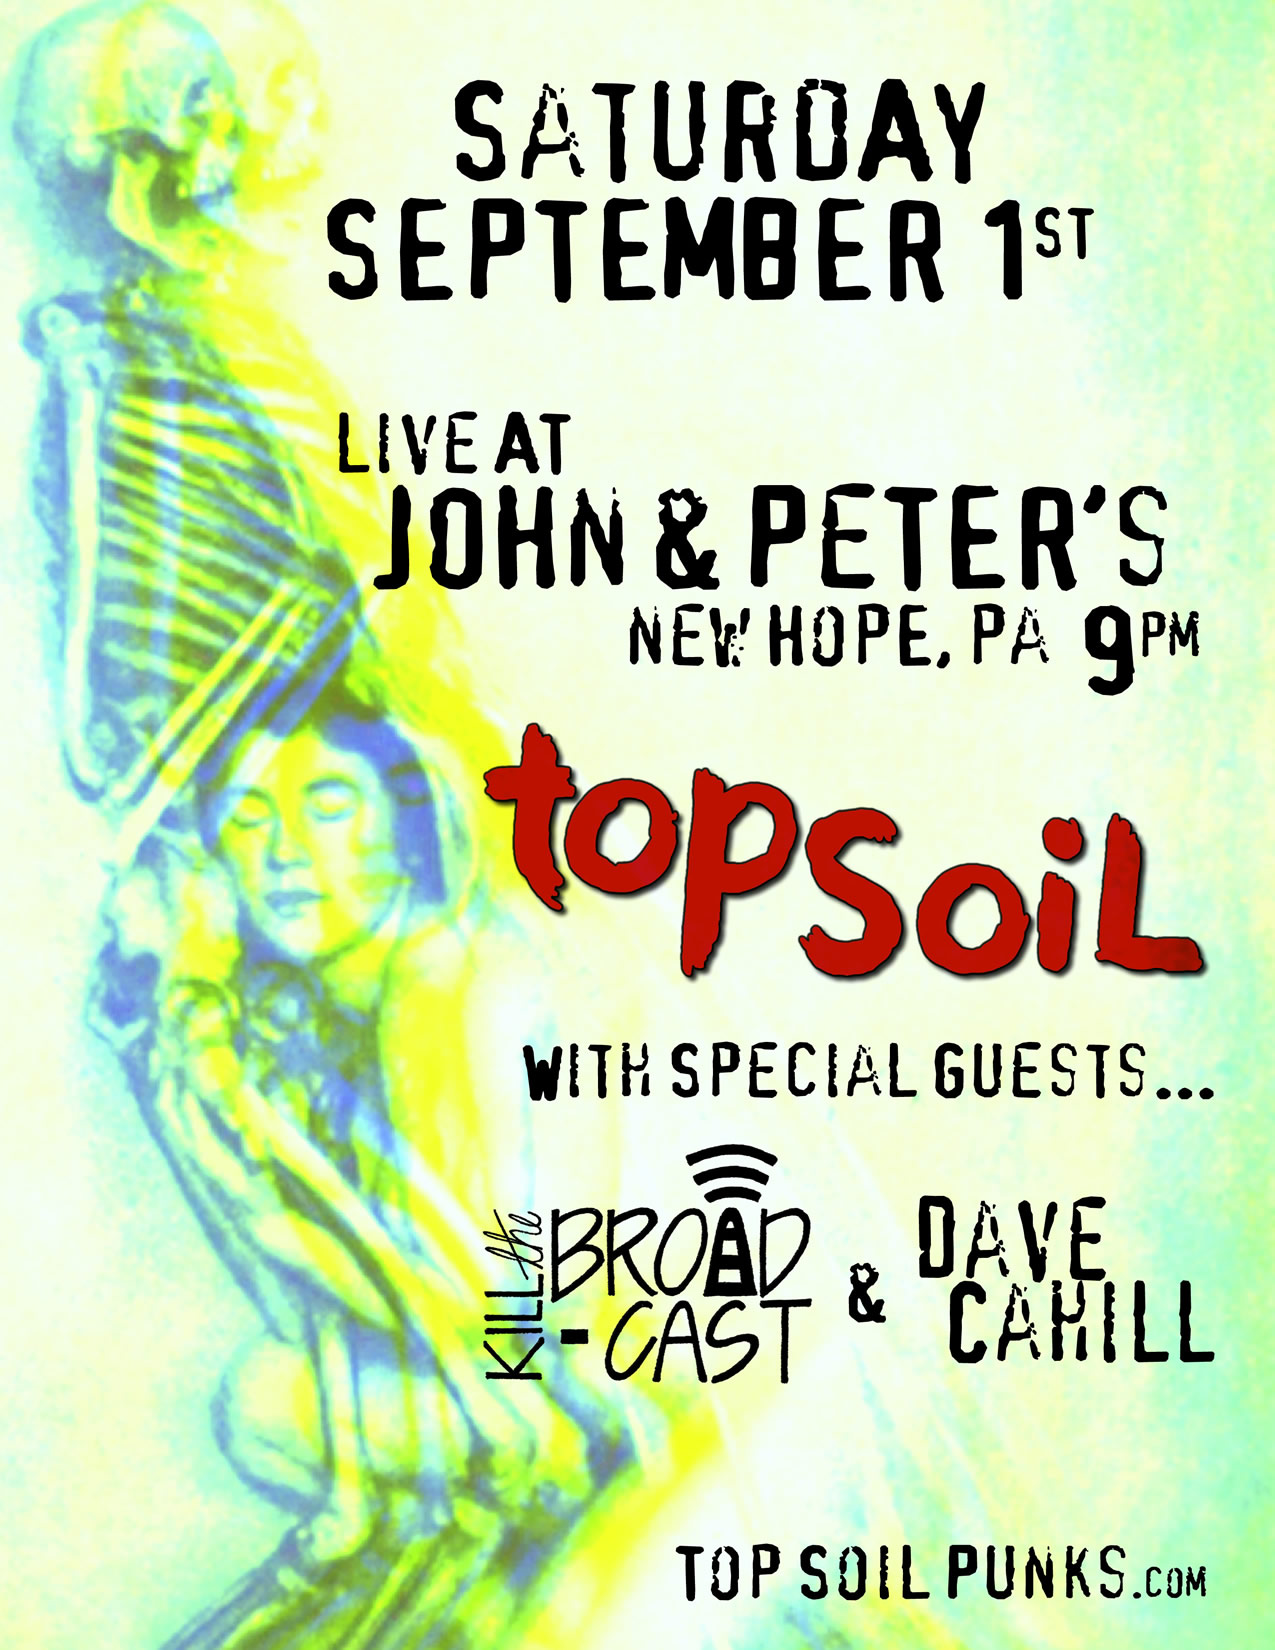 dave cahill, top soil, kill the broadcast at john and peter's